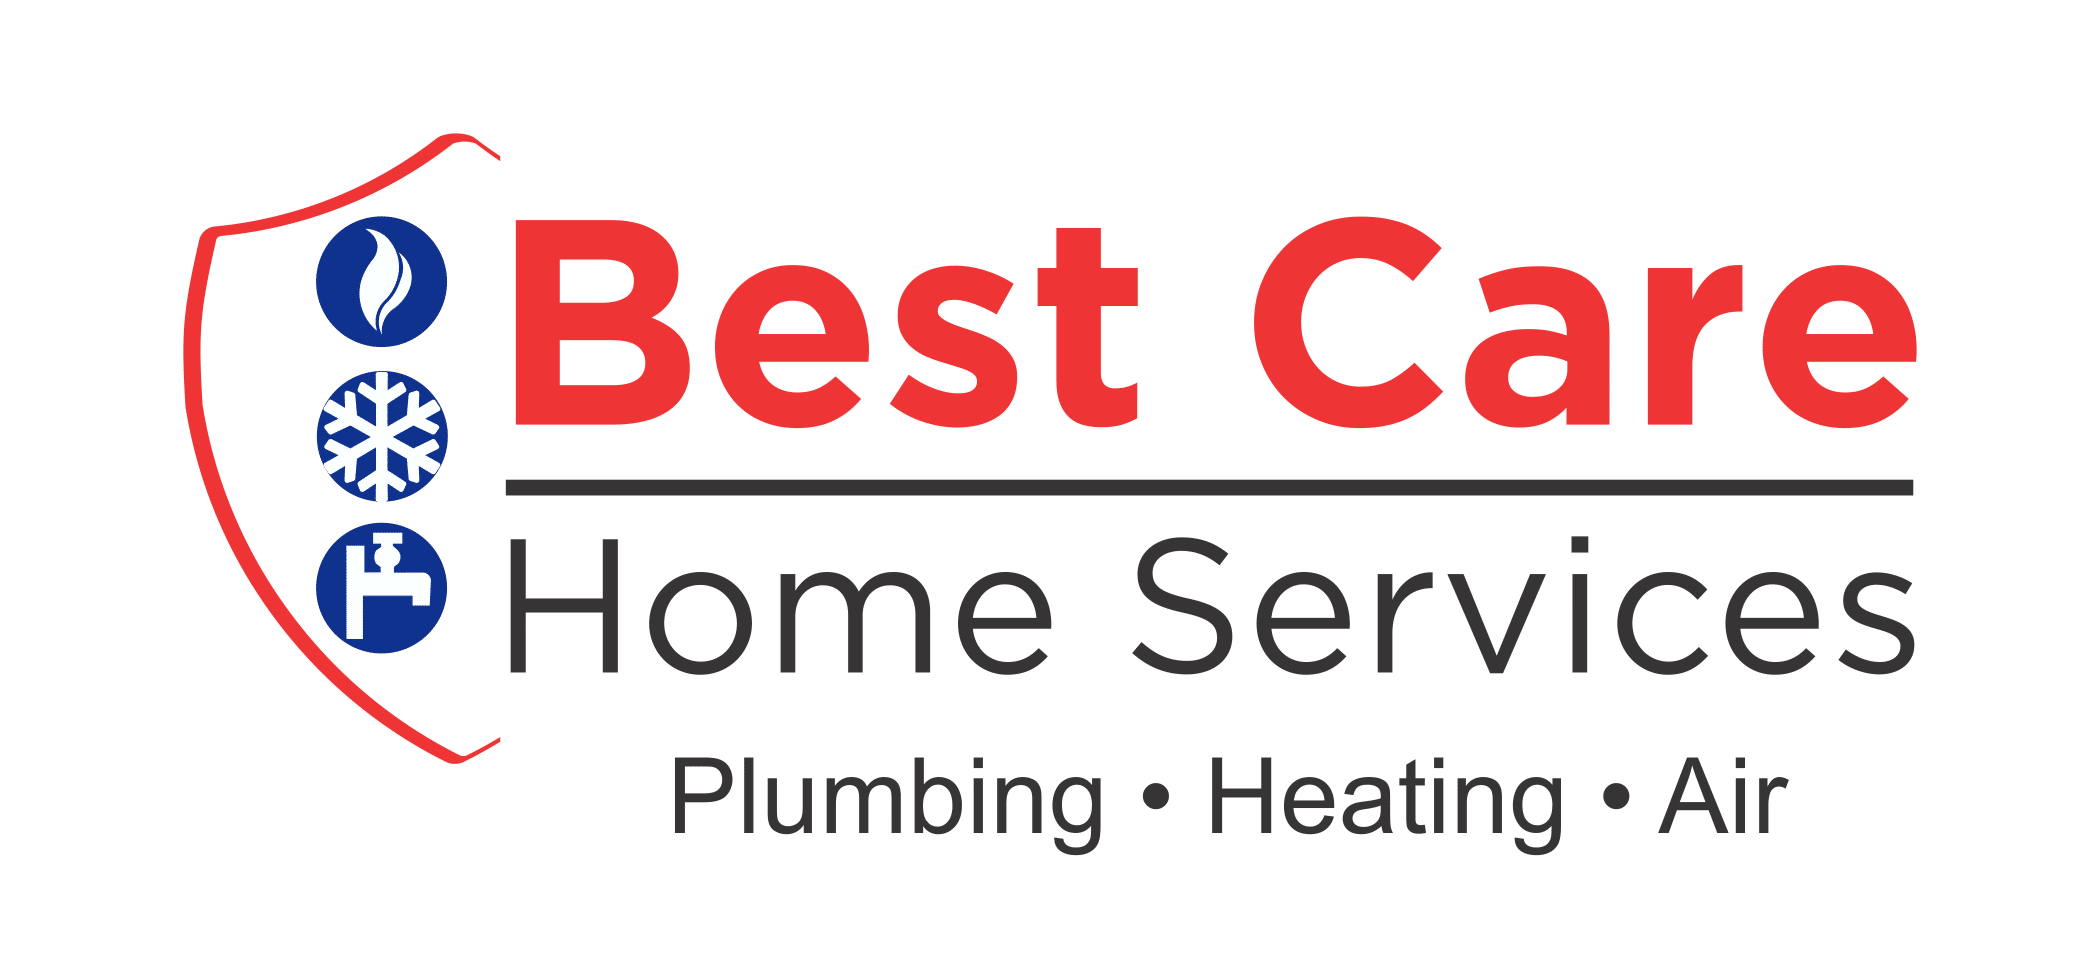 Best Care Home Services Tennessee